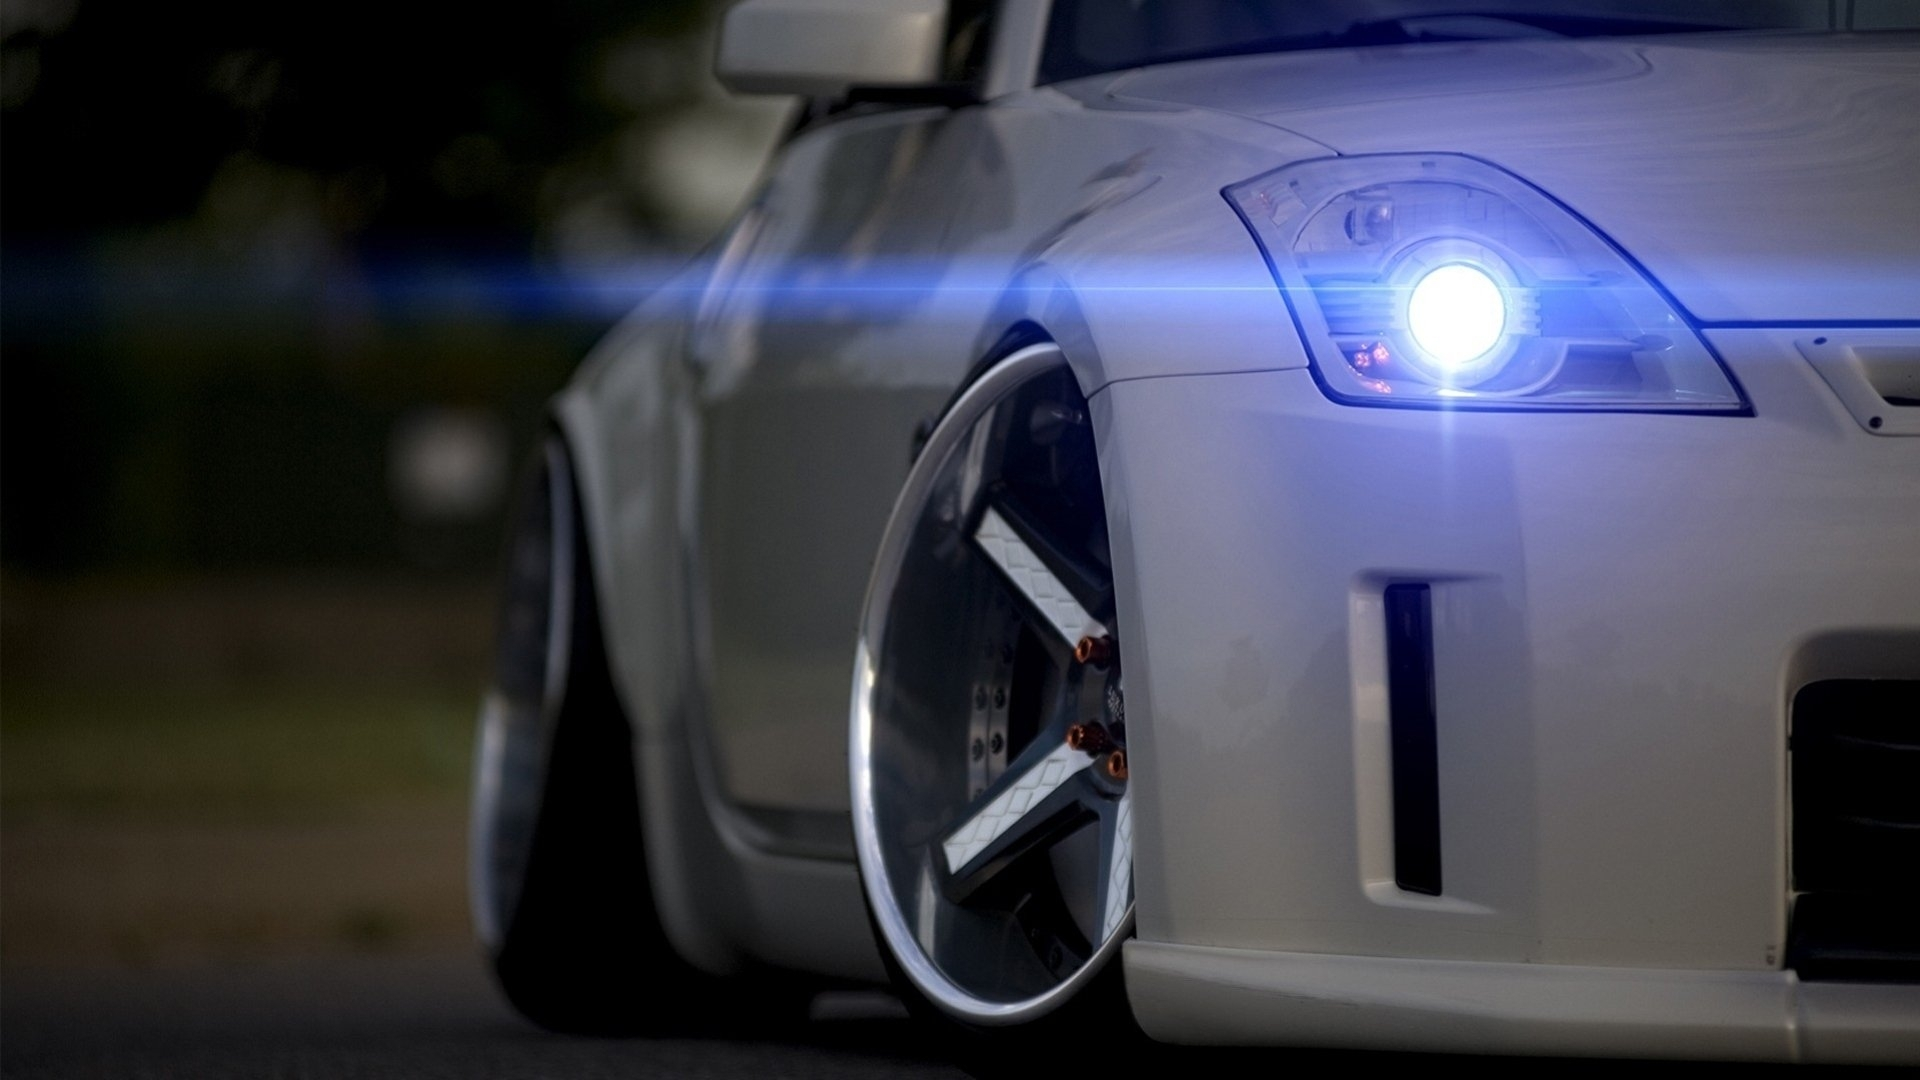 54 nissan 350z hd wallpapers | background images - wallpaper abyss